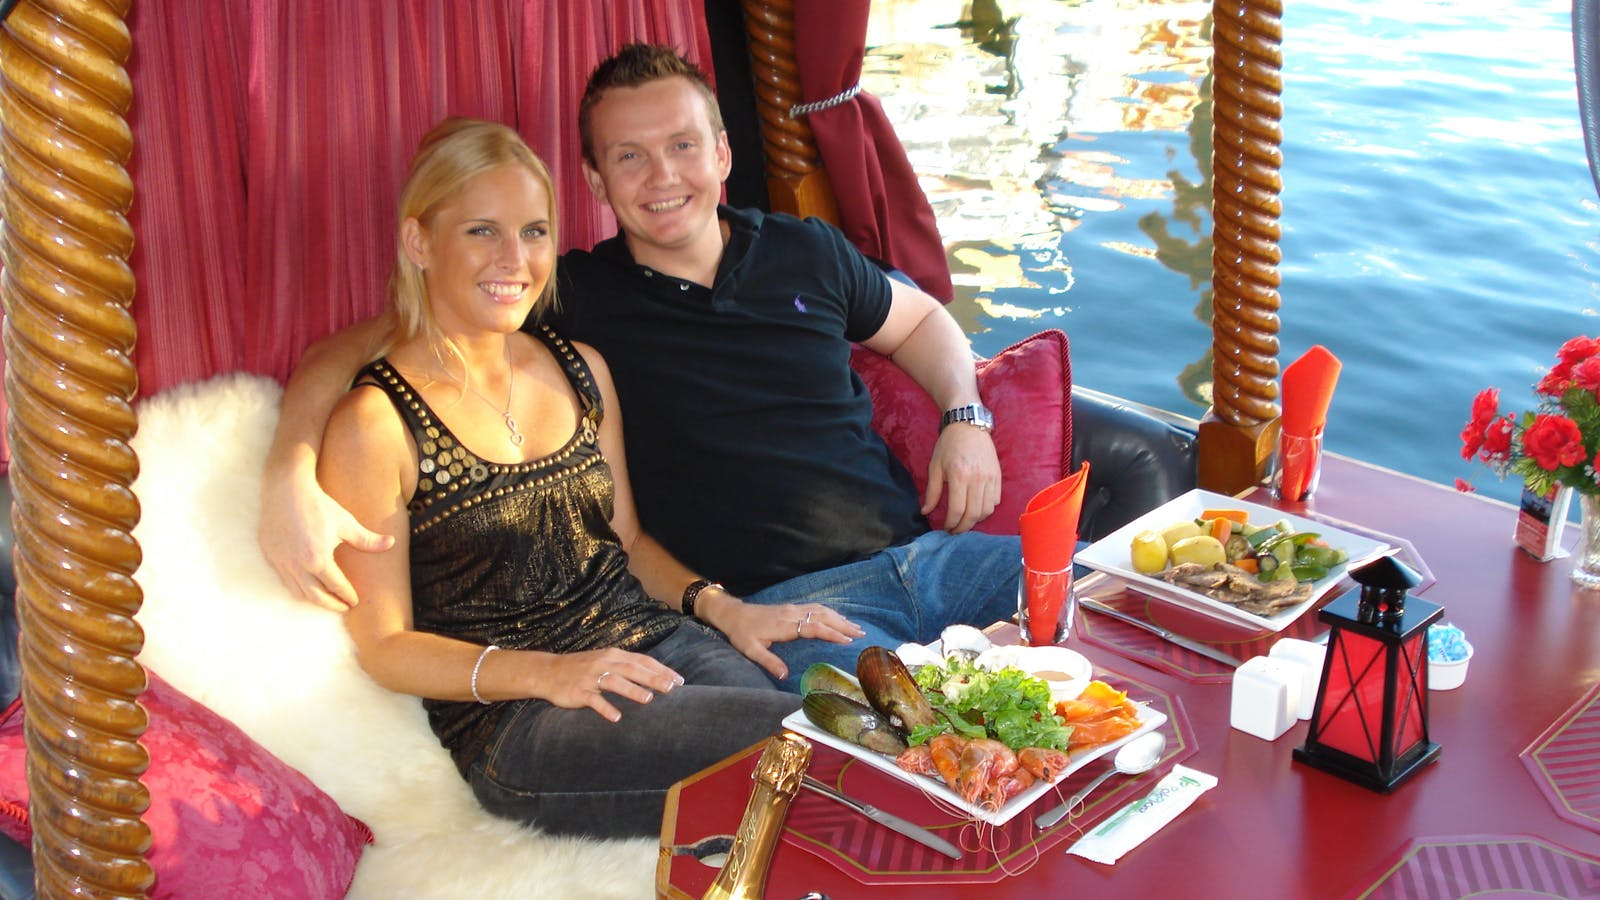 Their cruises are the perfect way to celebrate any special occasion.